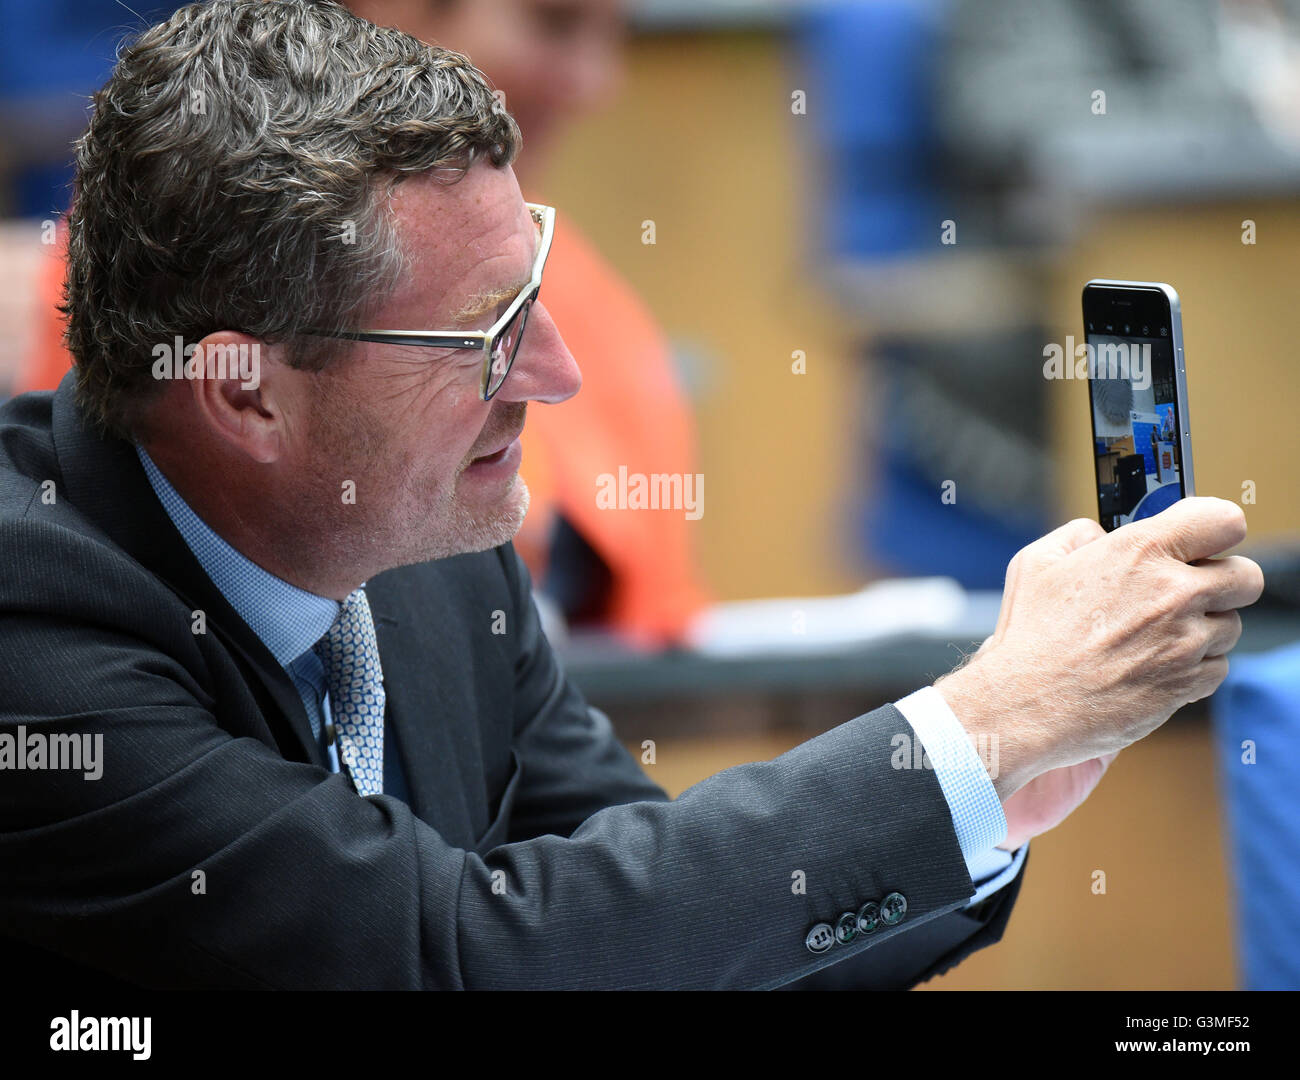 Bonn, Germany. 13th June, 2016. Publisher of the German tabloid 'Bild', Kai Diekmann, attends the awarding of the Stock Photo